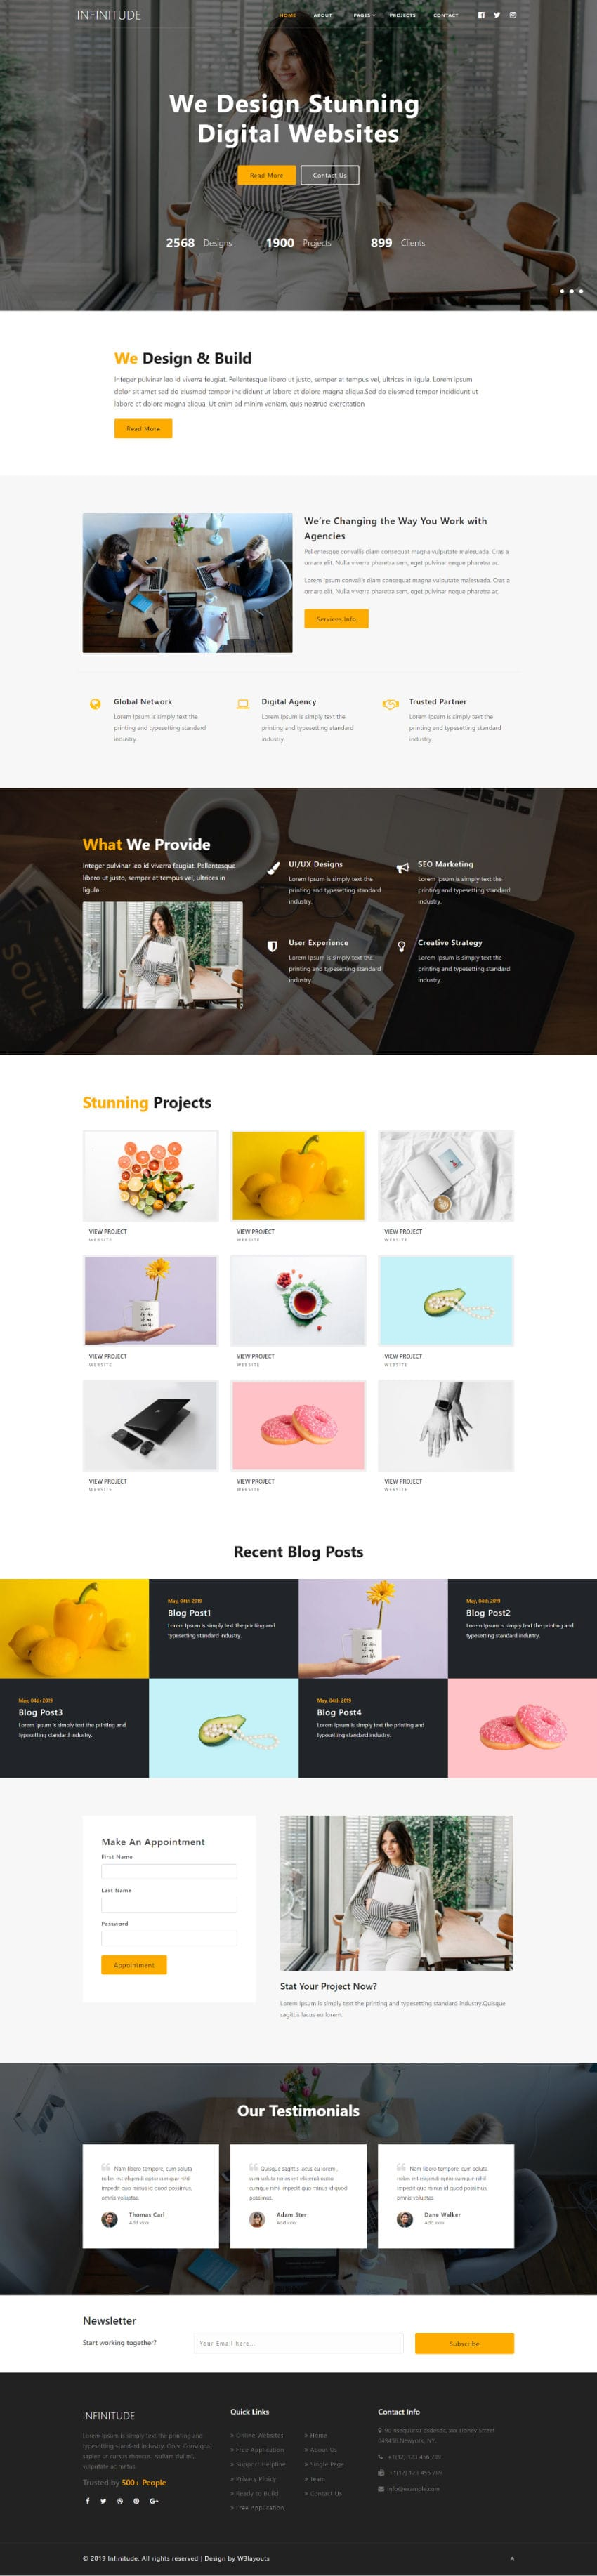 Infinitude, a corporate website template to suit your business needs.